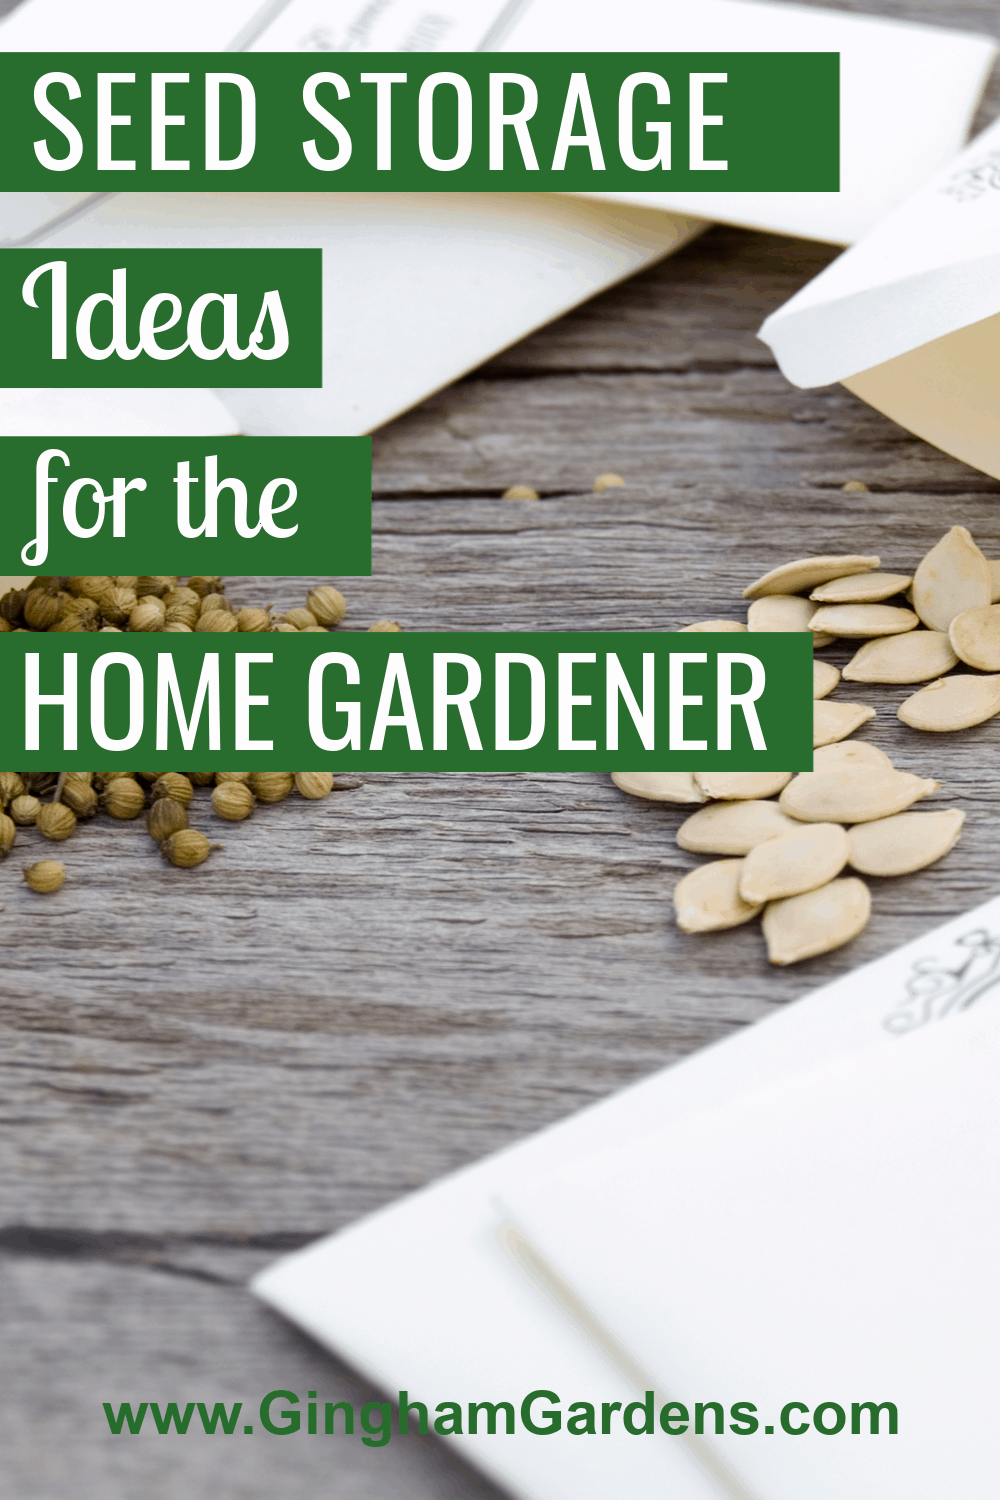 Image of Garden Seeds with text overlay - Seed Storage Ideas for the Home Gardener